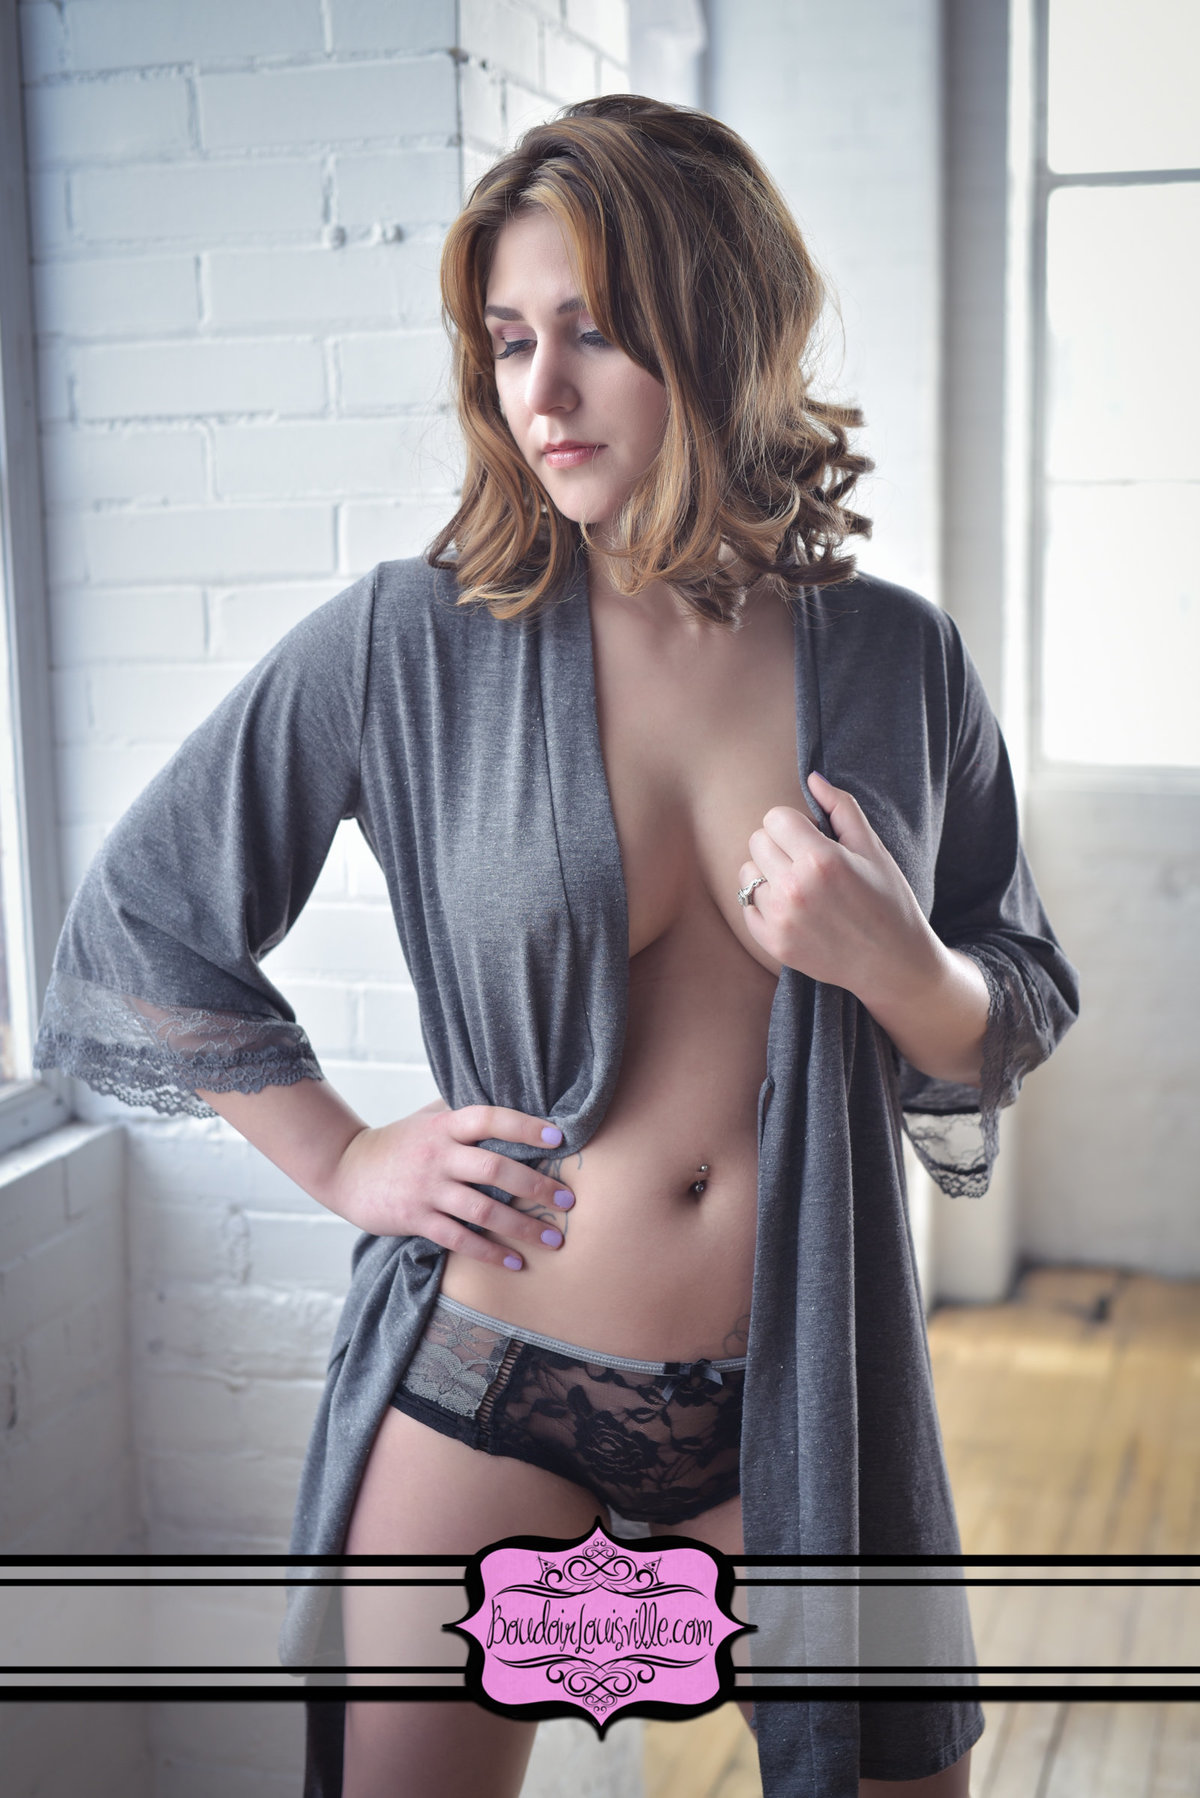 Boudoir Louisville - Boudoir Photo Studio - Louisville, KY-7